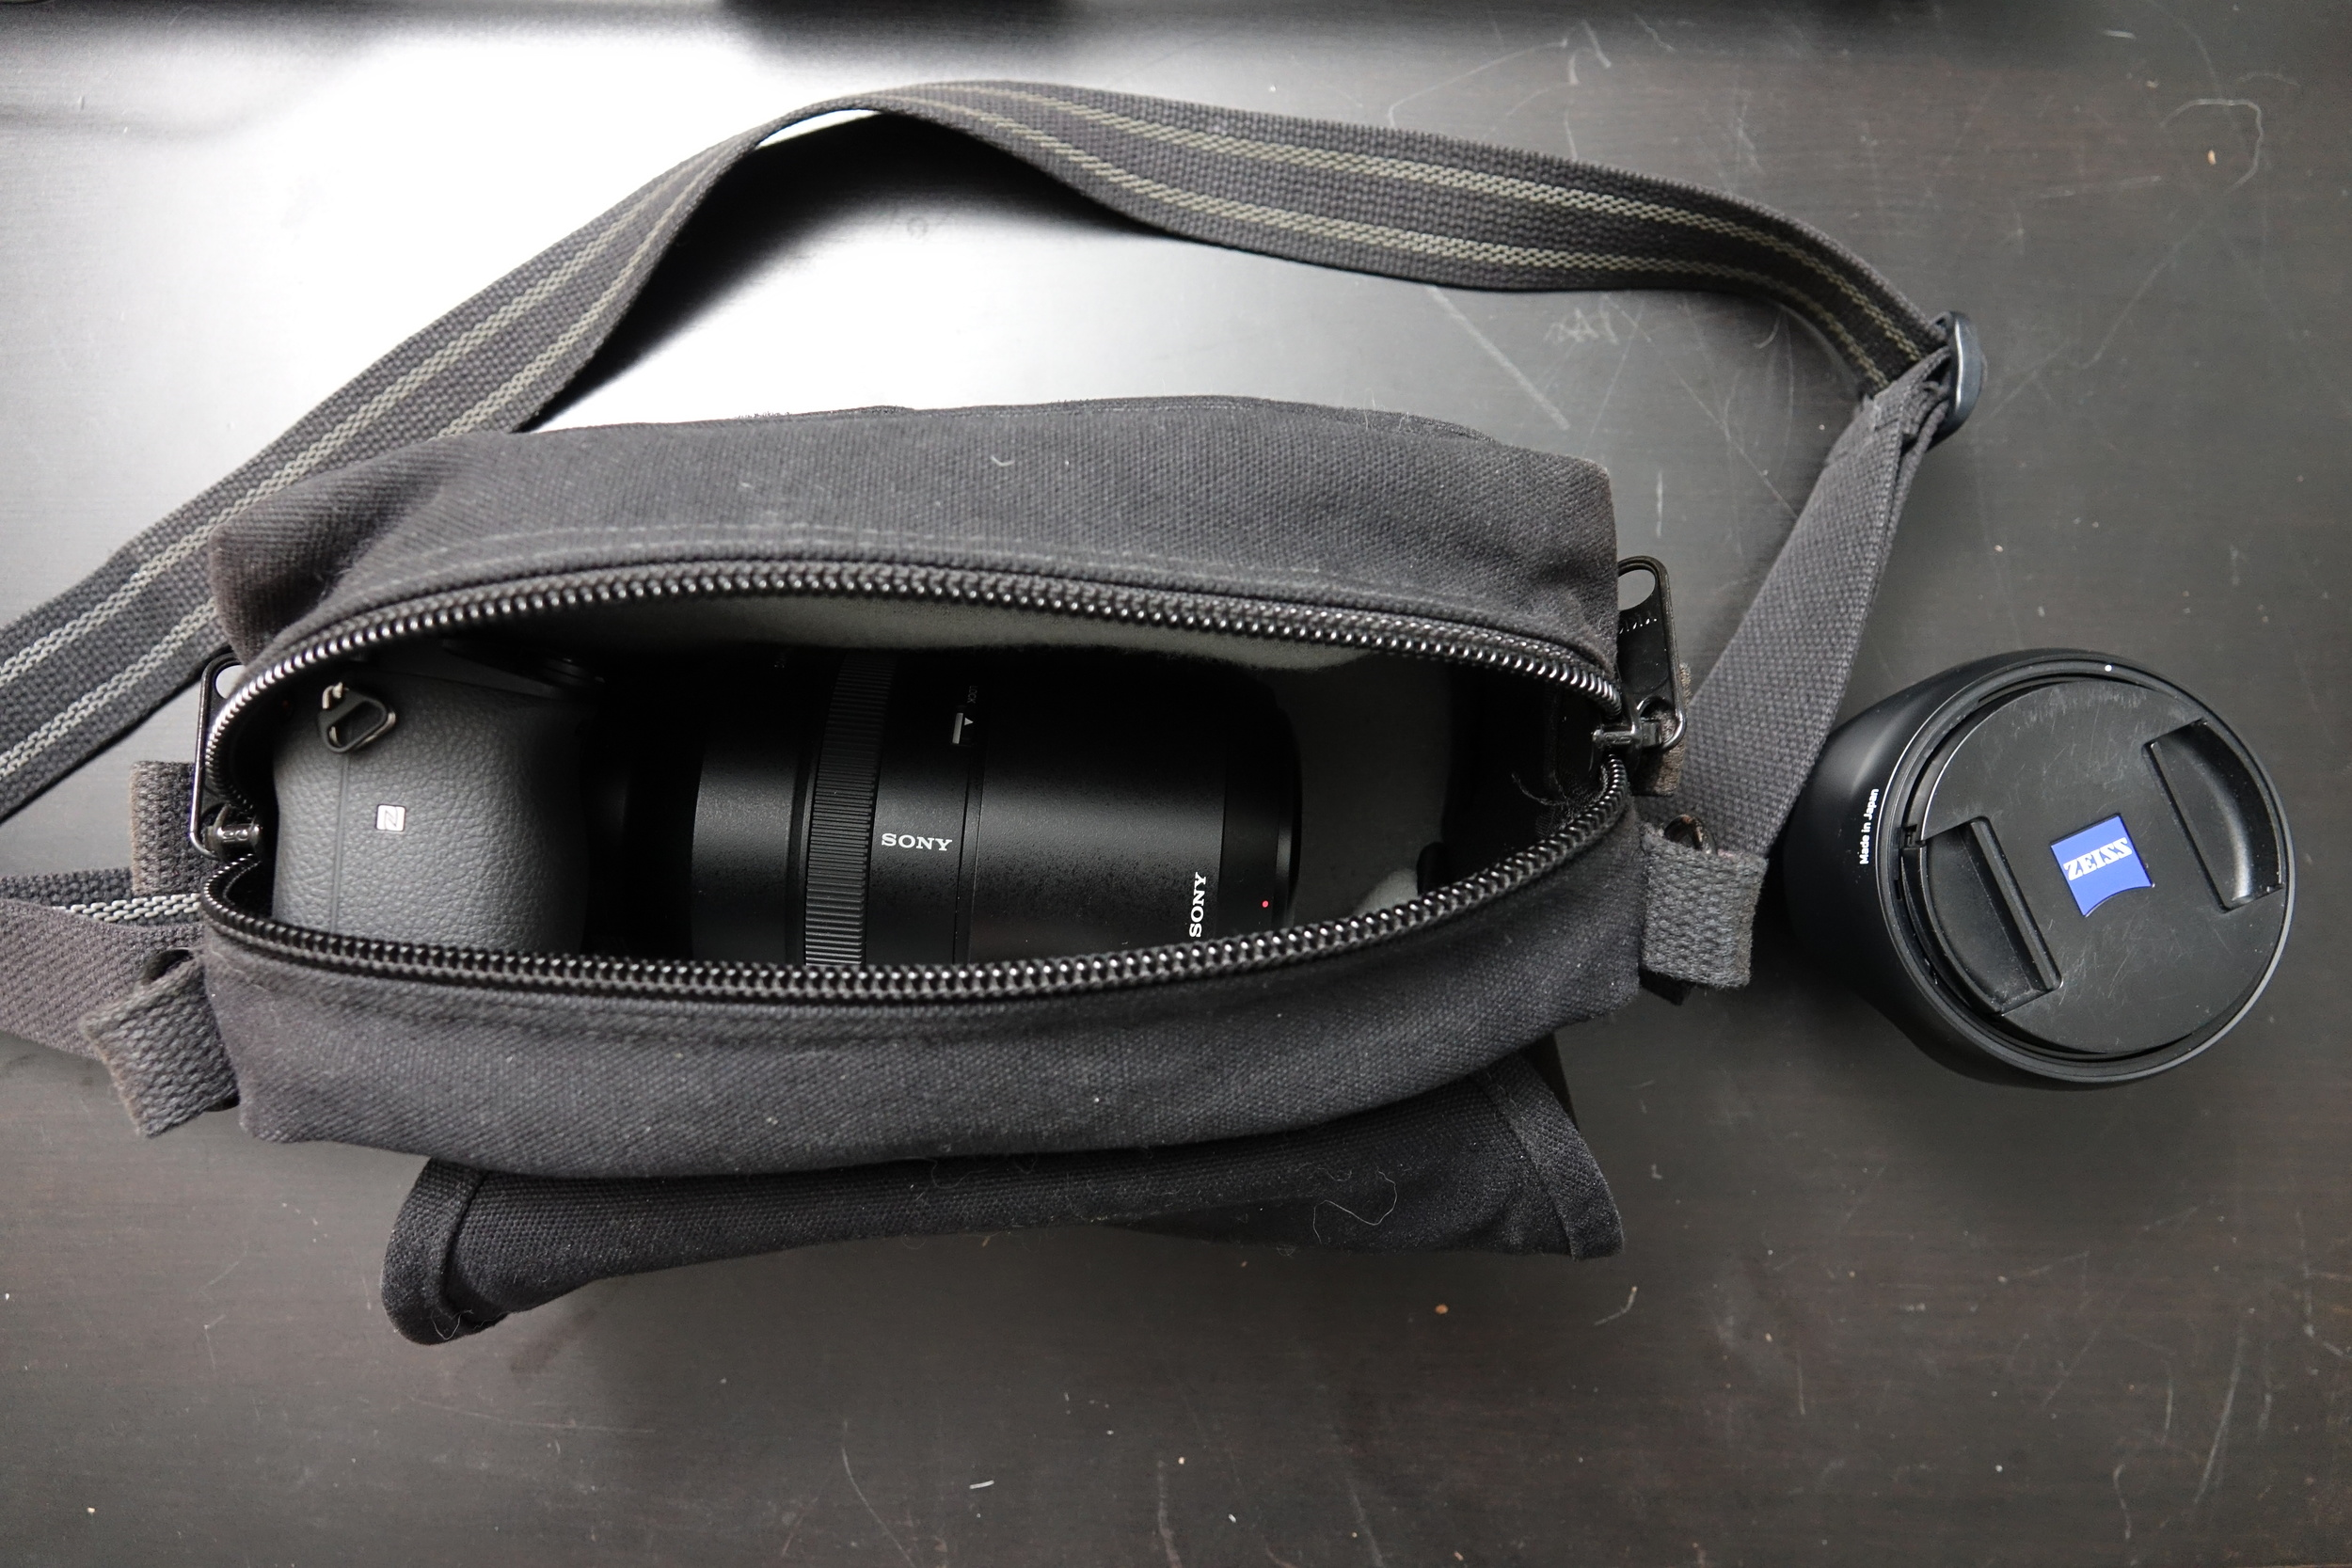 Domke F-5XB is a very small, unassuming and very comfortable shoulder/belt bag, but it requires compromises when packing. Inside: Sony a6300 with Sony FE 70-300mm f/4.5-5.6; outside, Zeiss Batis 18mm f/2.8